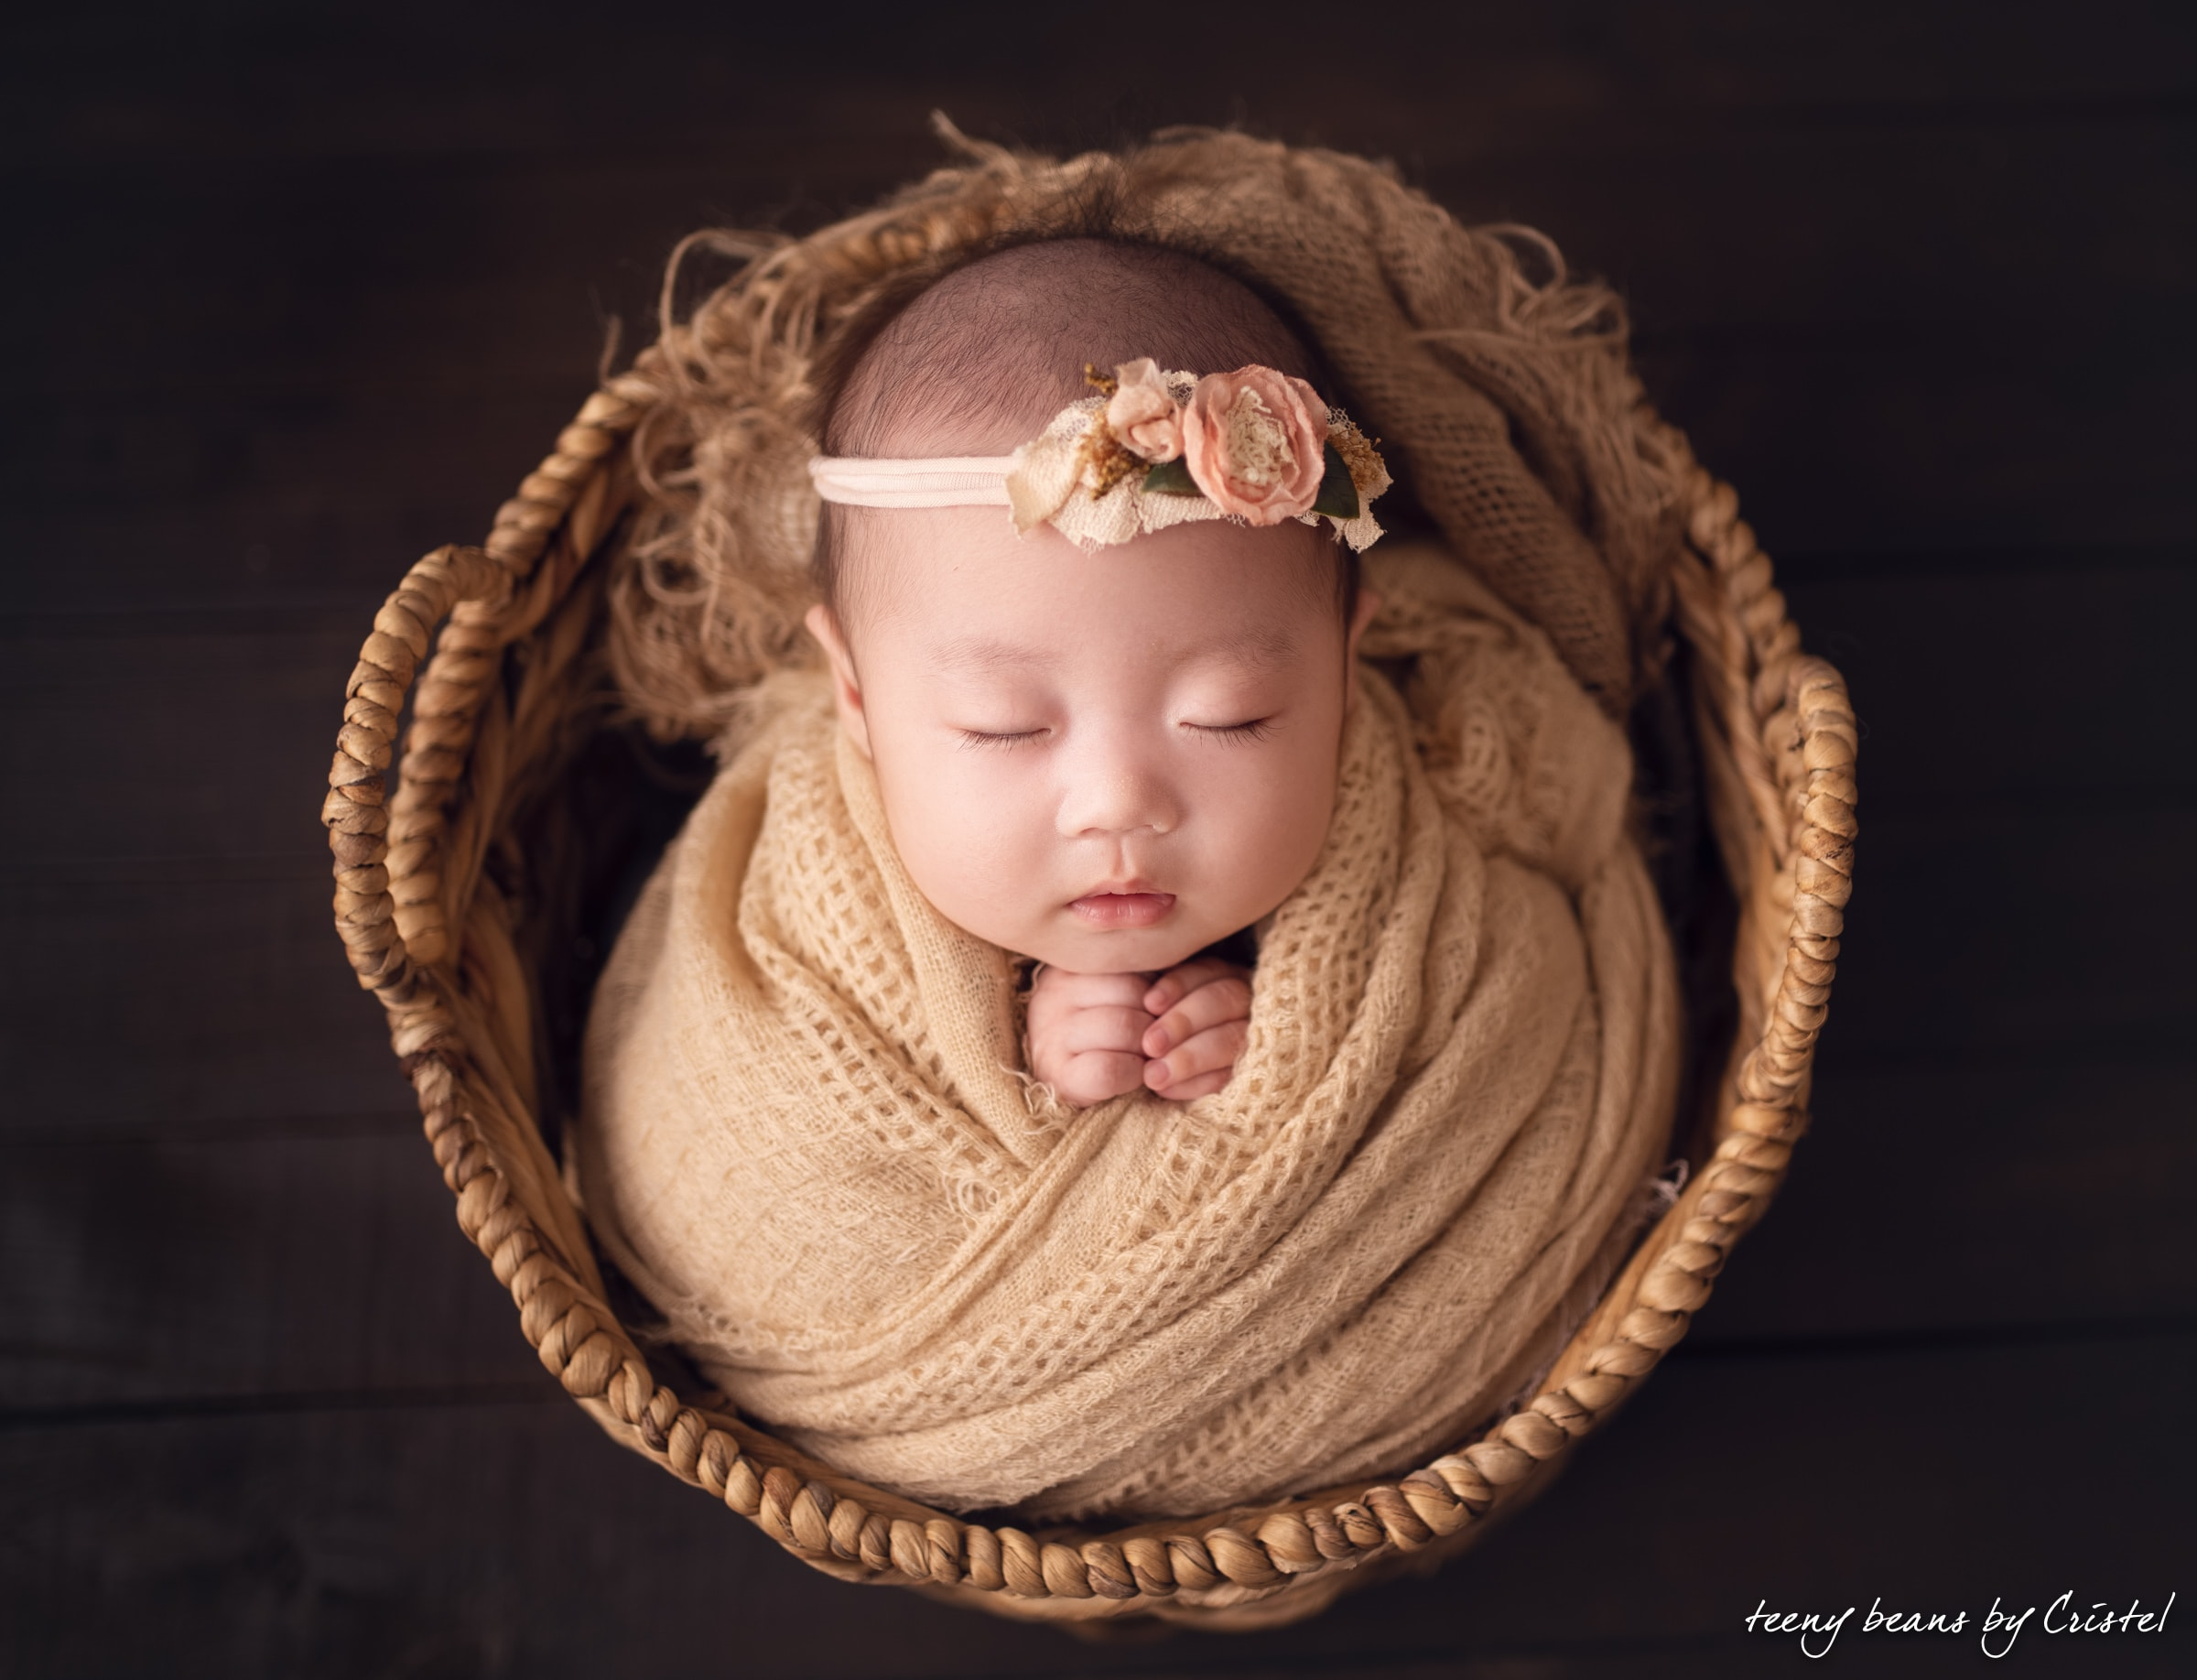 raleigh baby photographer – baby charlotte